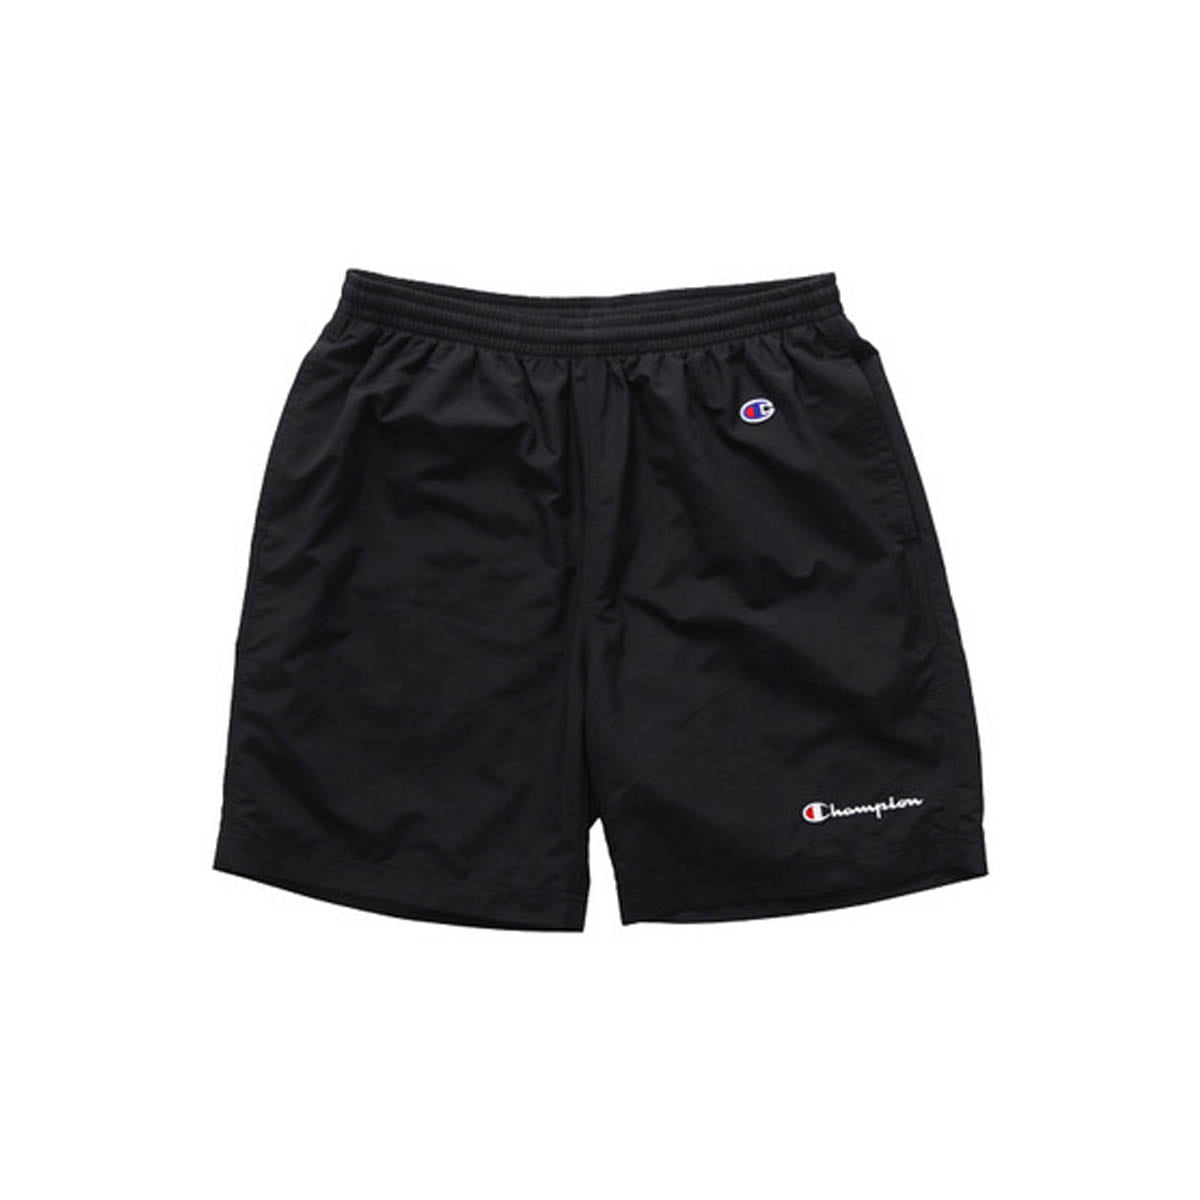 [CHAMPION] ACTION STYLE SHORTS 'BLACK' (C3-K518)